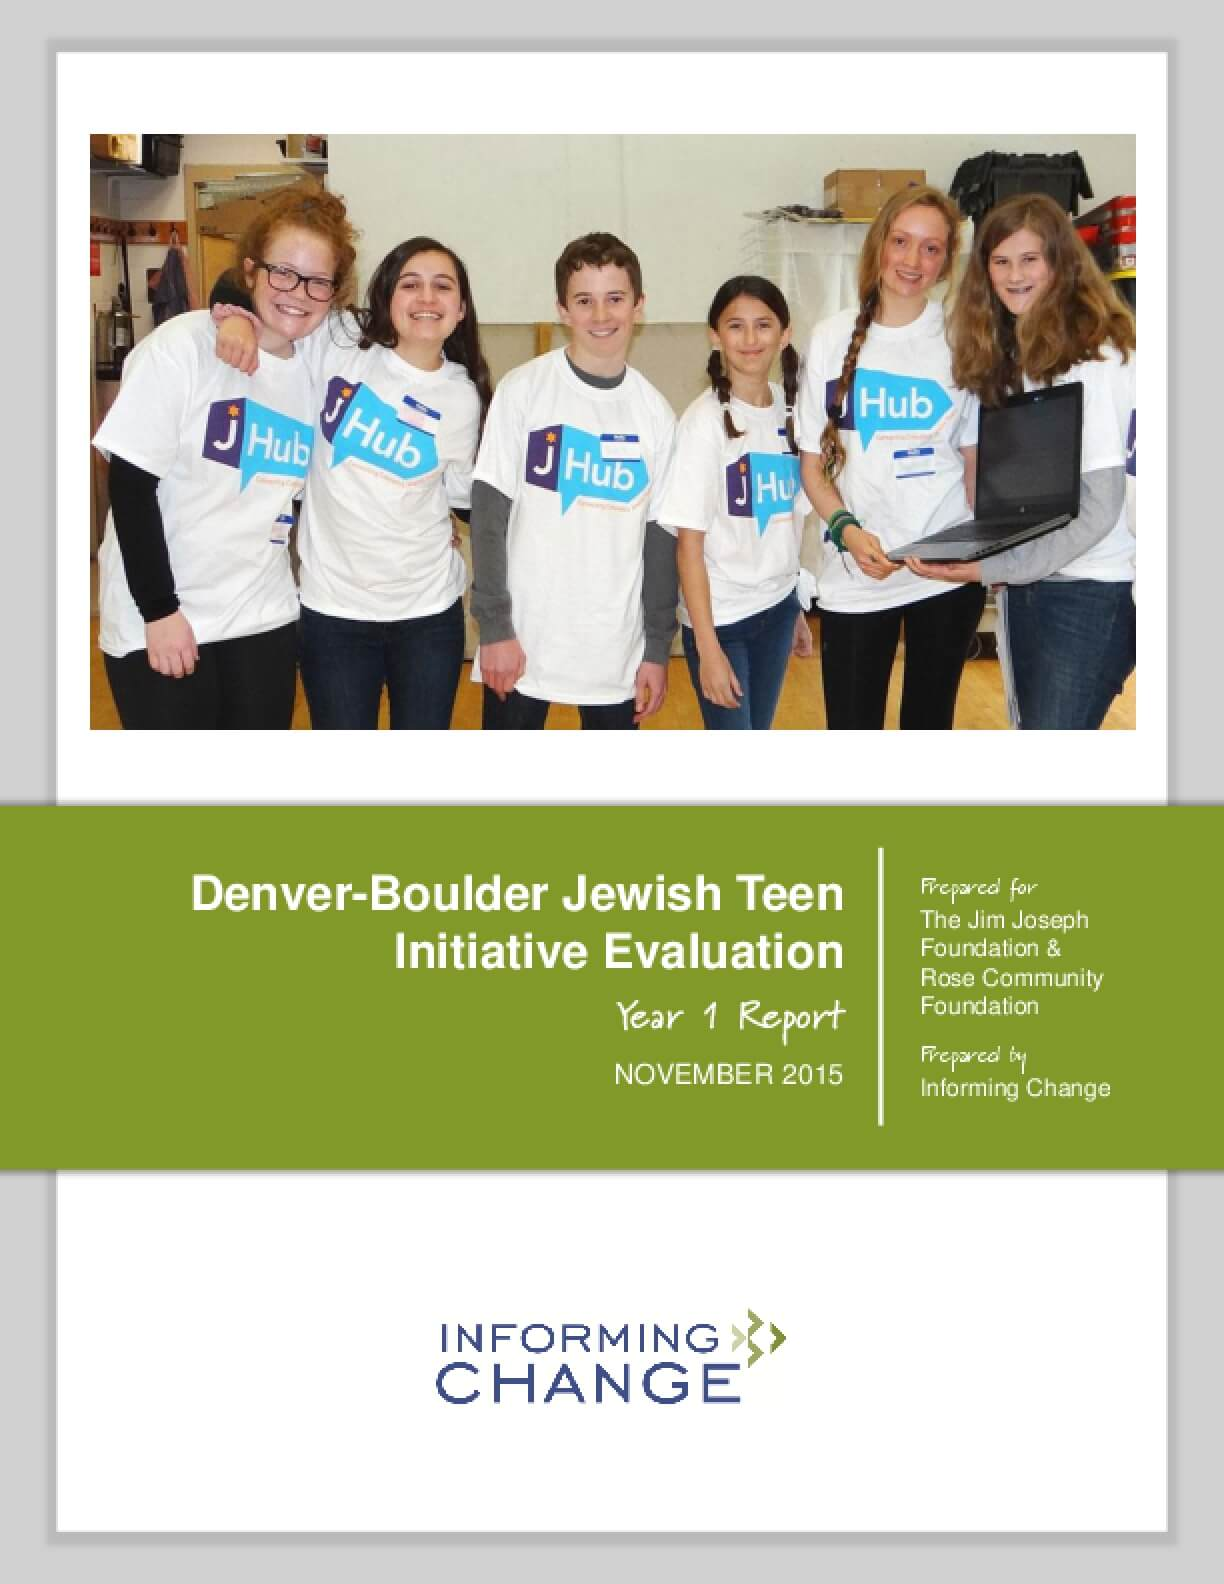 Denver-Boulder Jewish Teen Initiative Evaluation, Year 1 Report